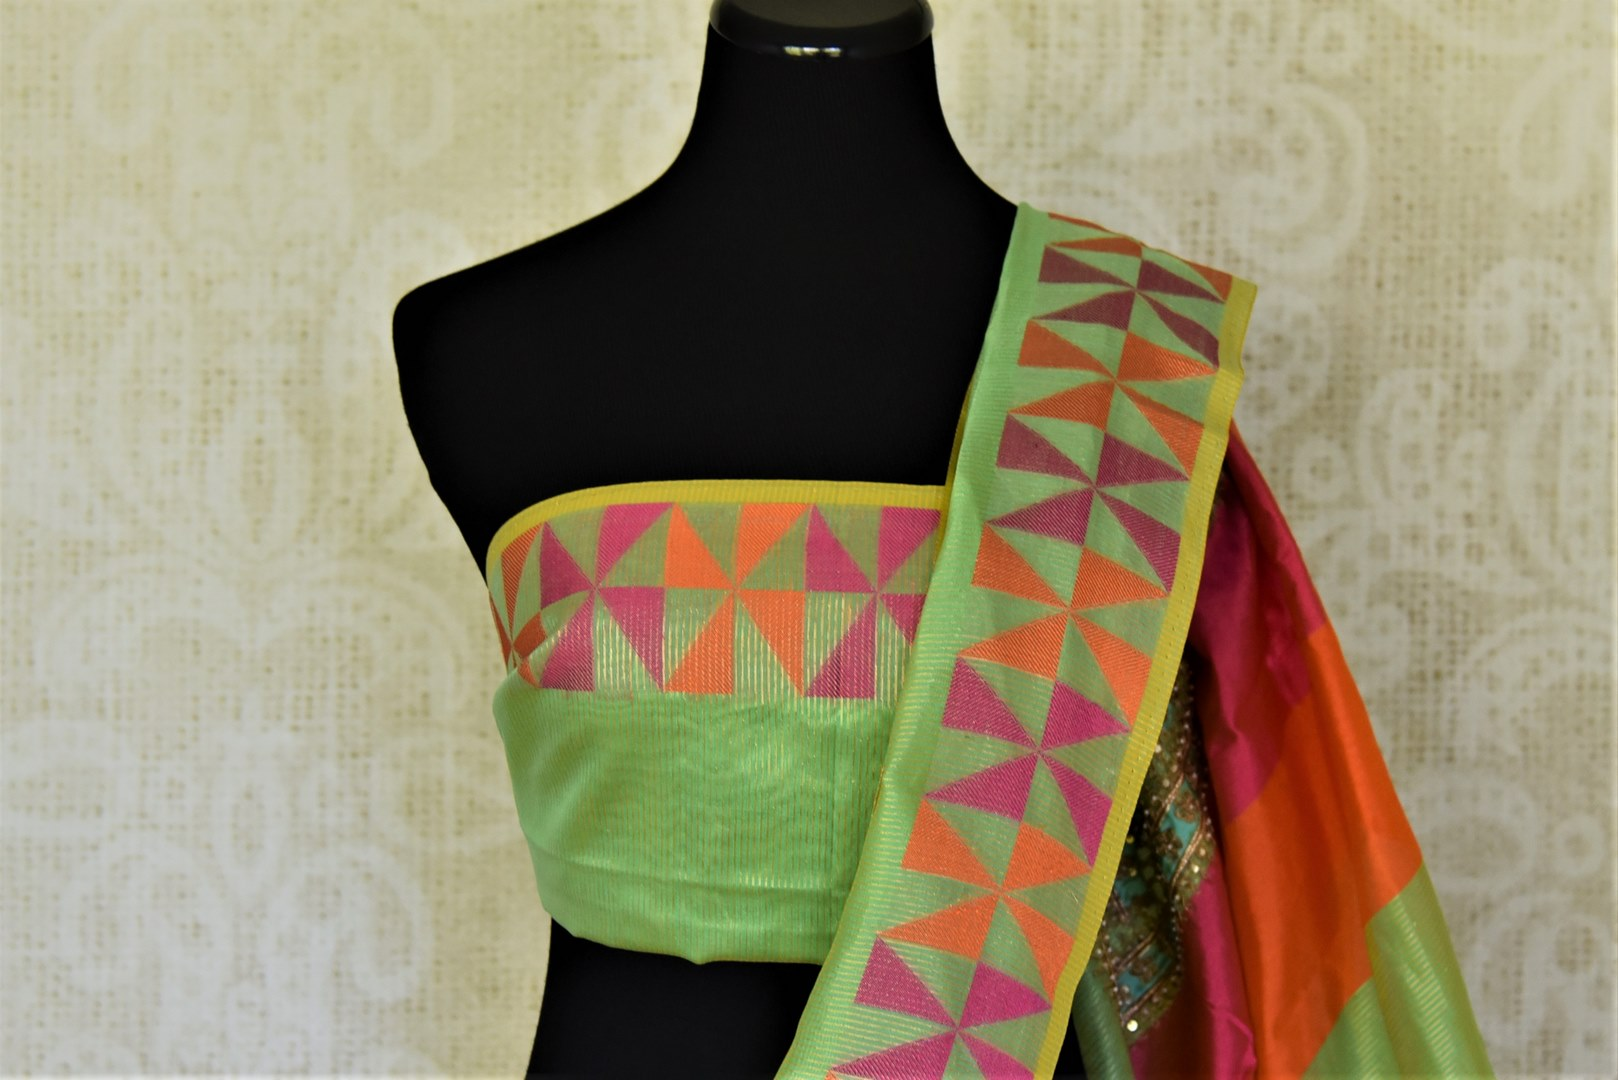 Stunning light green embroidered handloom saree for online shopping in USA with colorful border. Buy exquisite handloom sarees, pure silk sarees from Pure Elegance Indian clothing store in USA for festive occasions.-blouse pallu